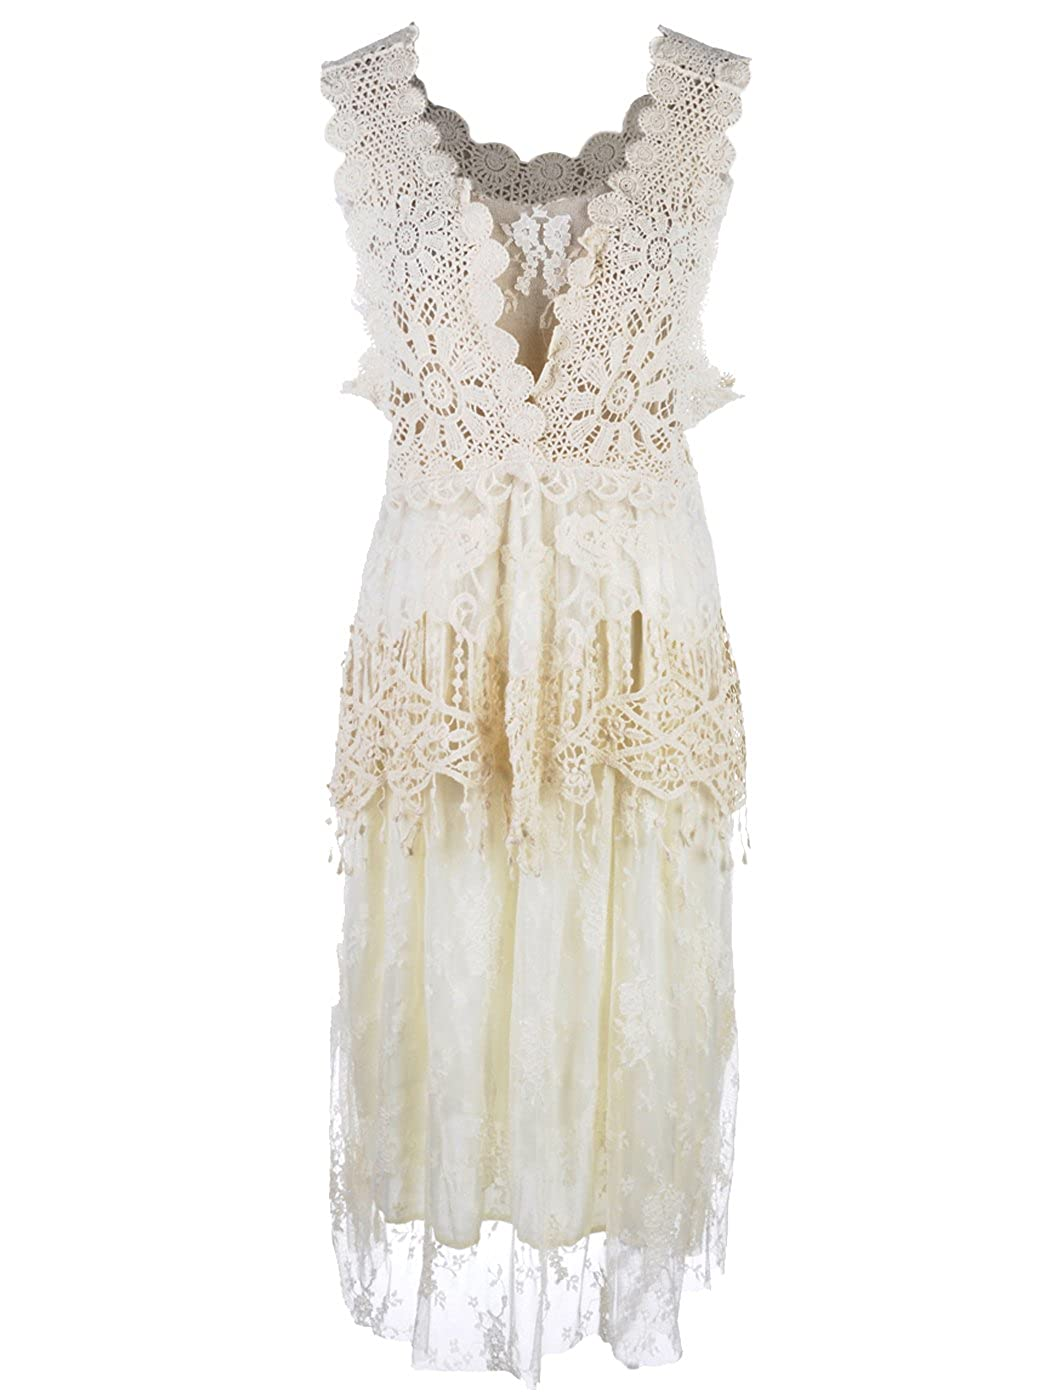 1920s Afternoon Dresses, Tea Dresses Anna-Kaci Womens Vintage Granny Influence Embroidery Detail Lace Ruffle Dress $47.90 AT vintagedancer.com